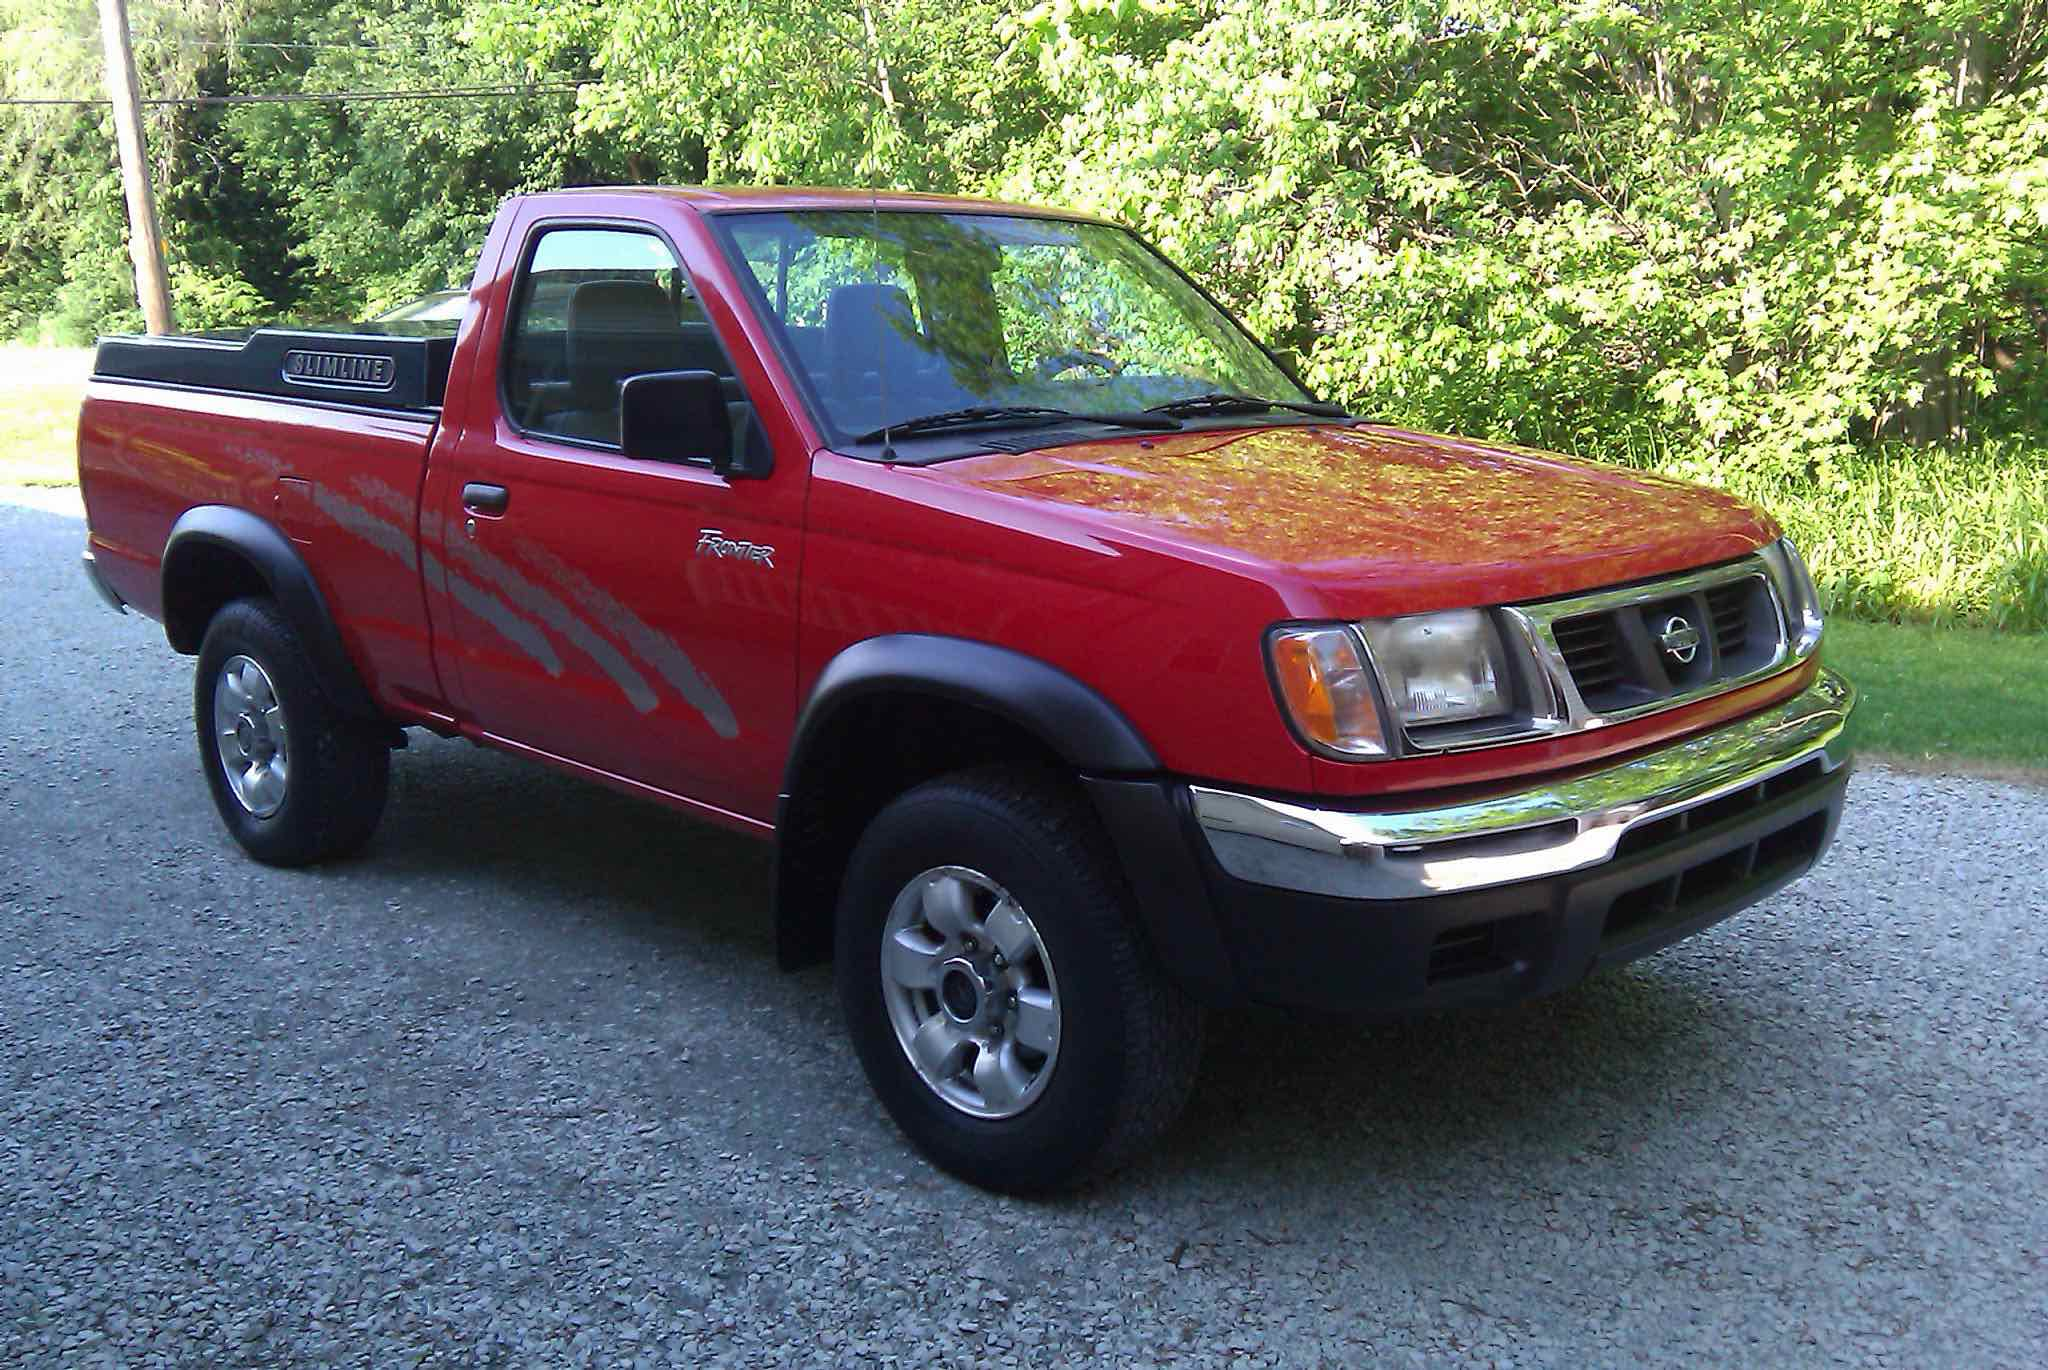 Retro review 1998 2004 nissan frontier epautos libertarian car talk its not yet a classic but the 98 2004 nissan frontier and other same era compact trucks like the toyota tacoma and ford rangermazda b series looks fandeluxe Choice Image